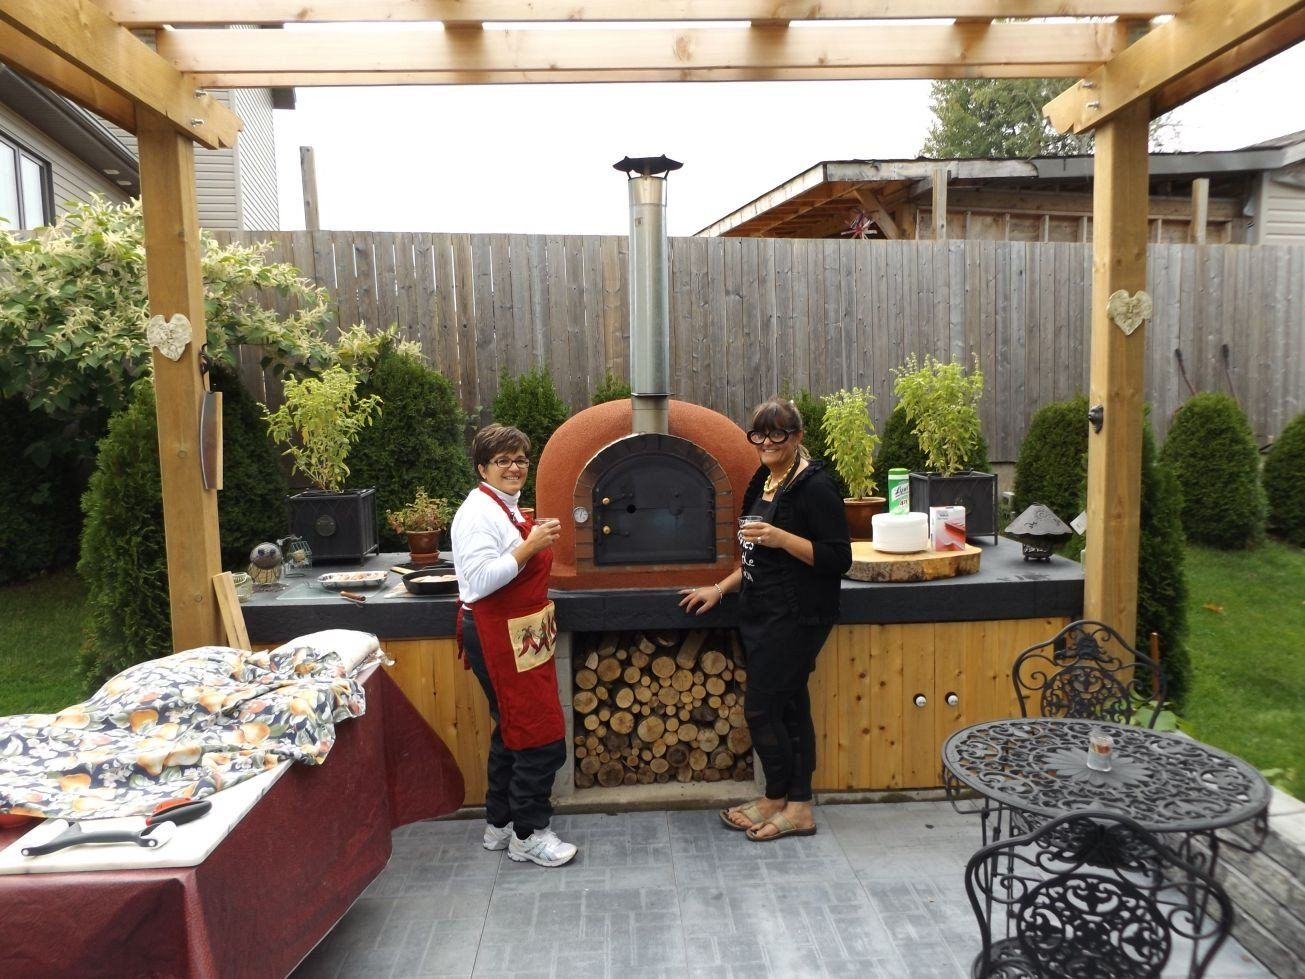 Outdoor Kitchen Designs With Pizza Oven Cliff Kitchen – Outdoor Kitchen with Pizza Oven